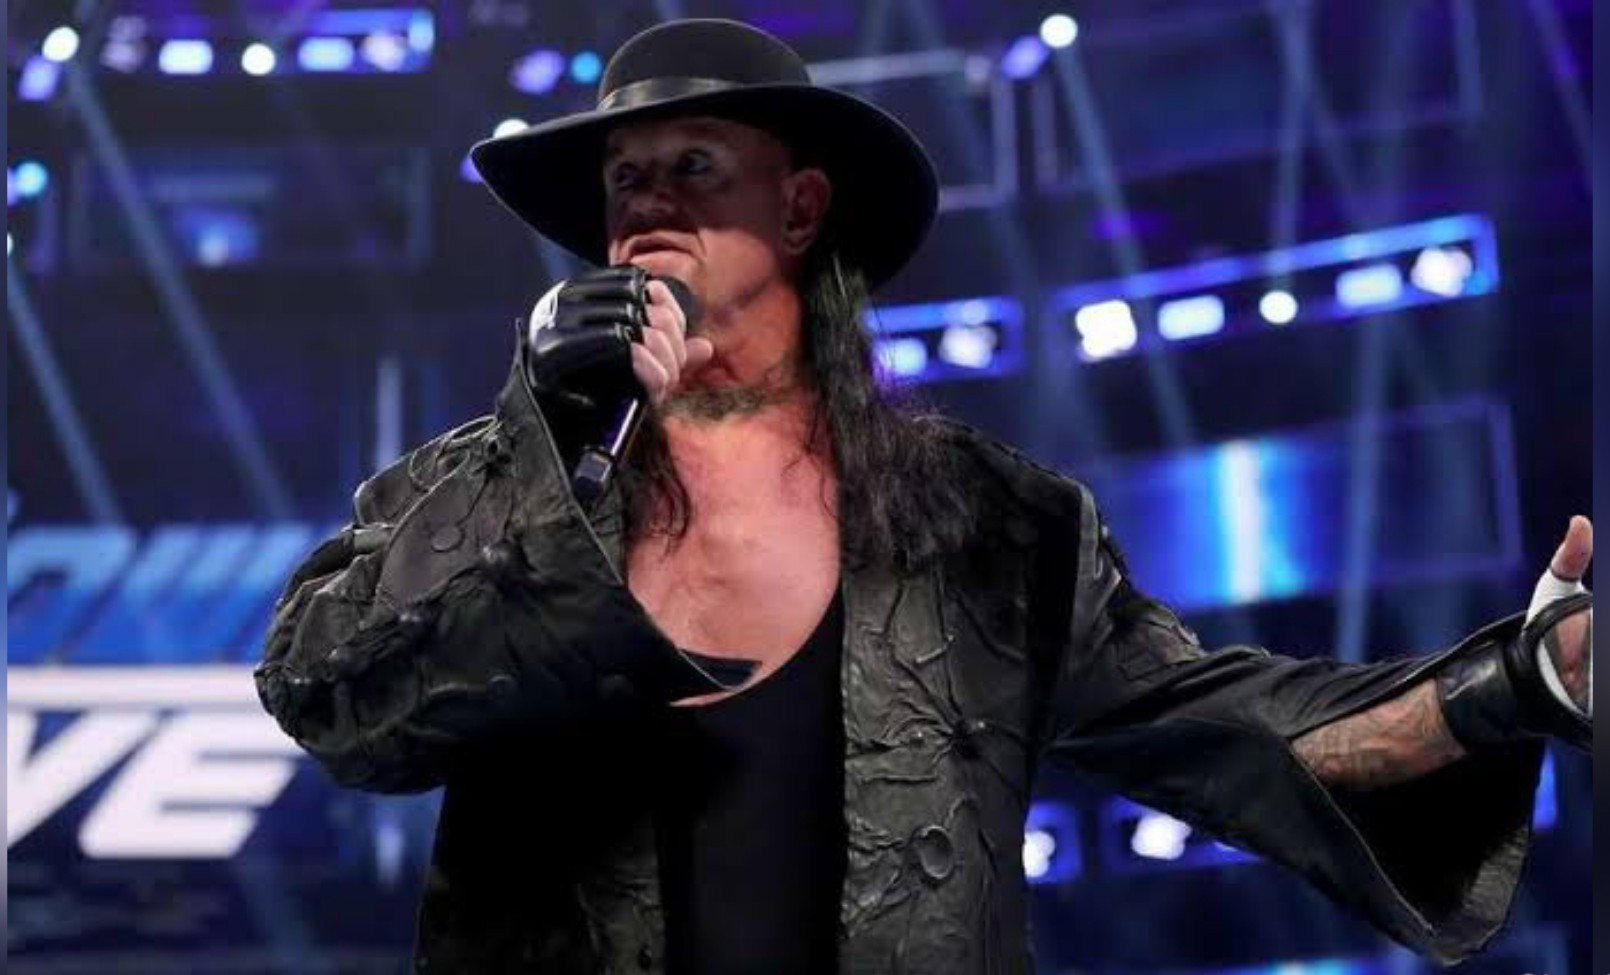 Undertaker announces retirement from wrestling